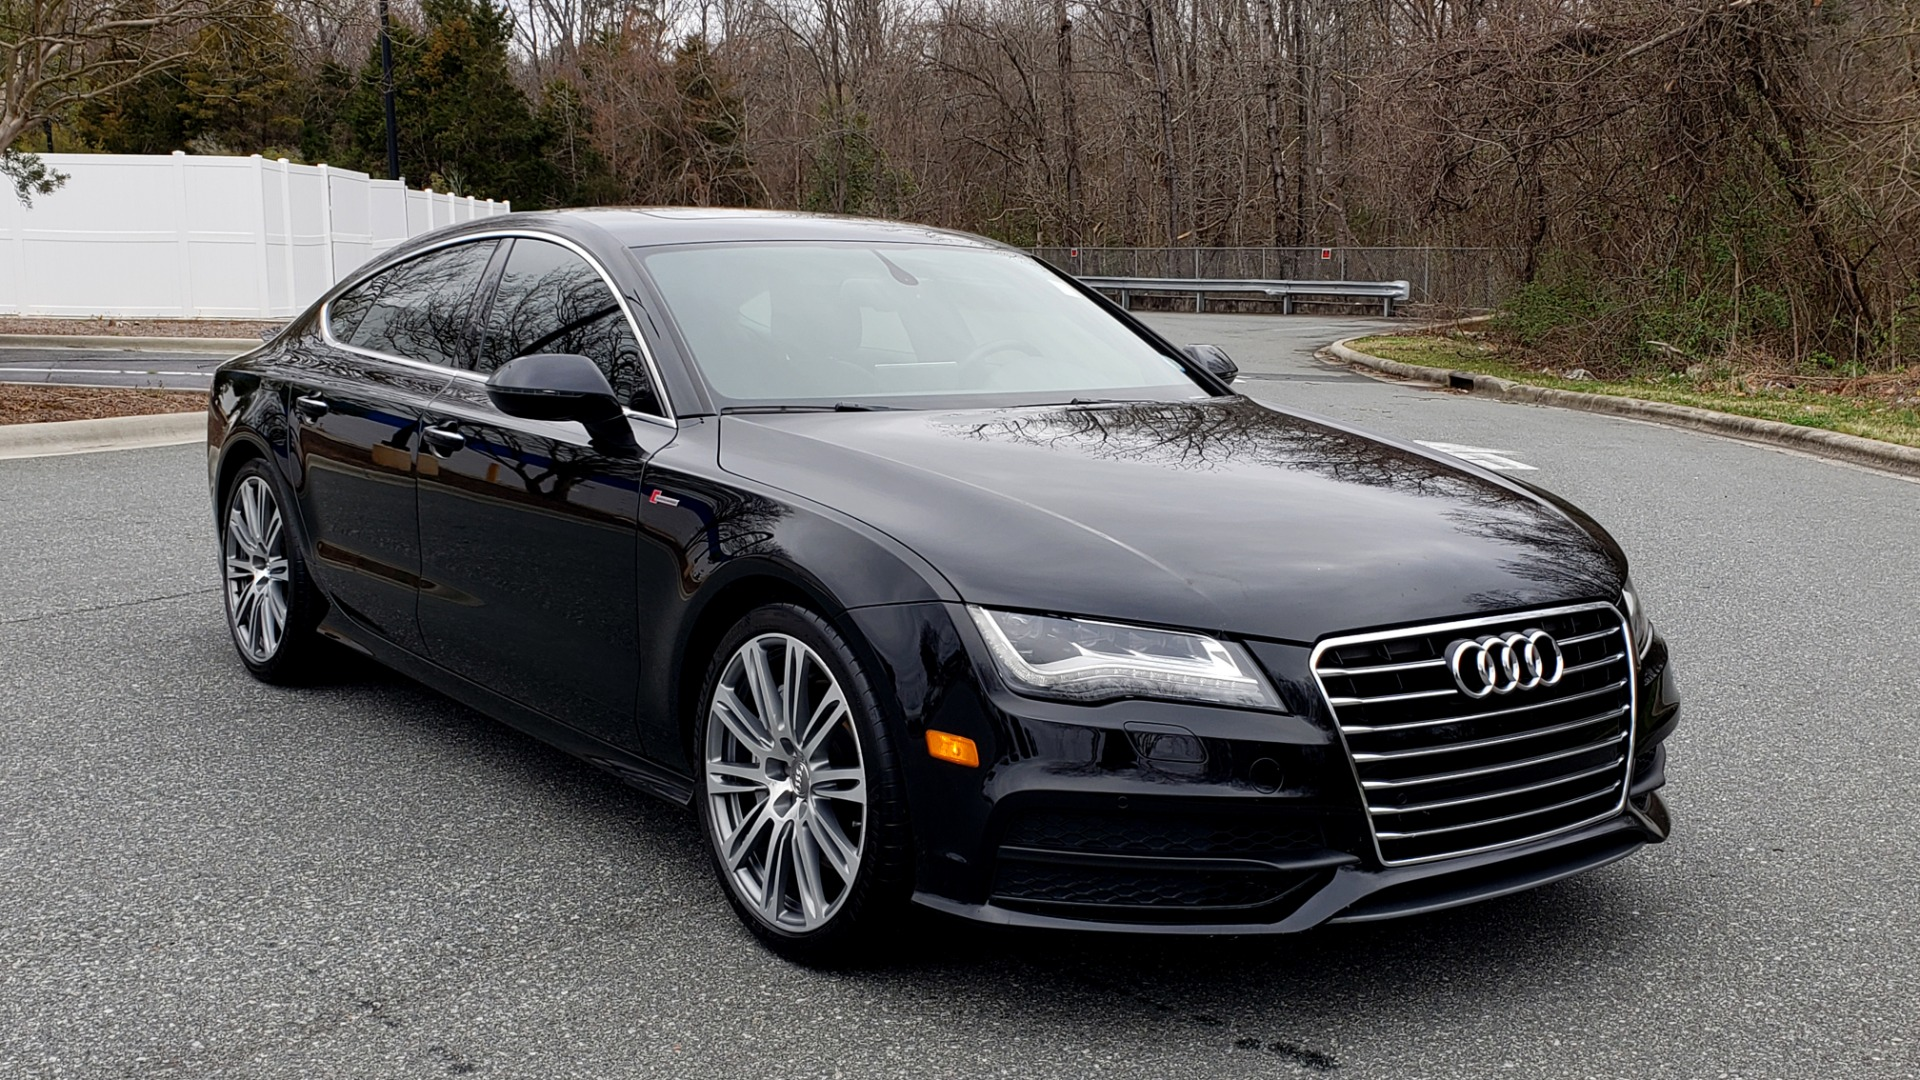 Used 2014 Audi A7 3.0 PRESTIGE / NAV / SUNROOF / BOSE / REARVIEW for sale Sold at Formula Imports in Charlotte NC 28227 5